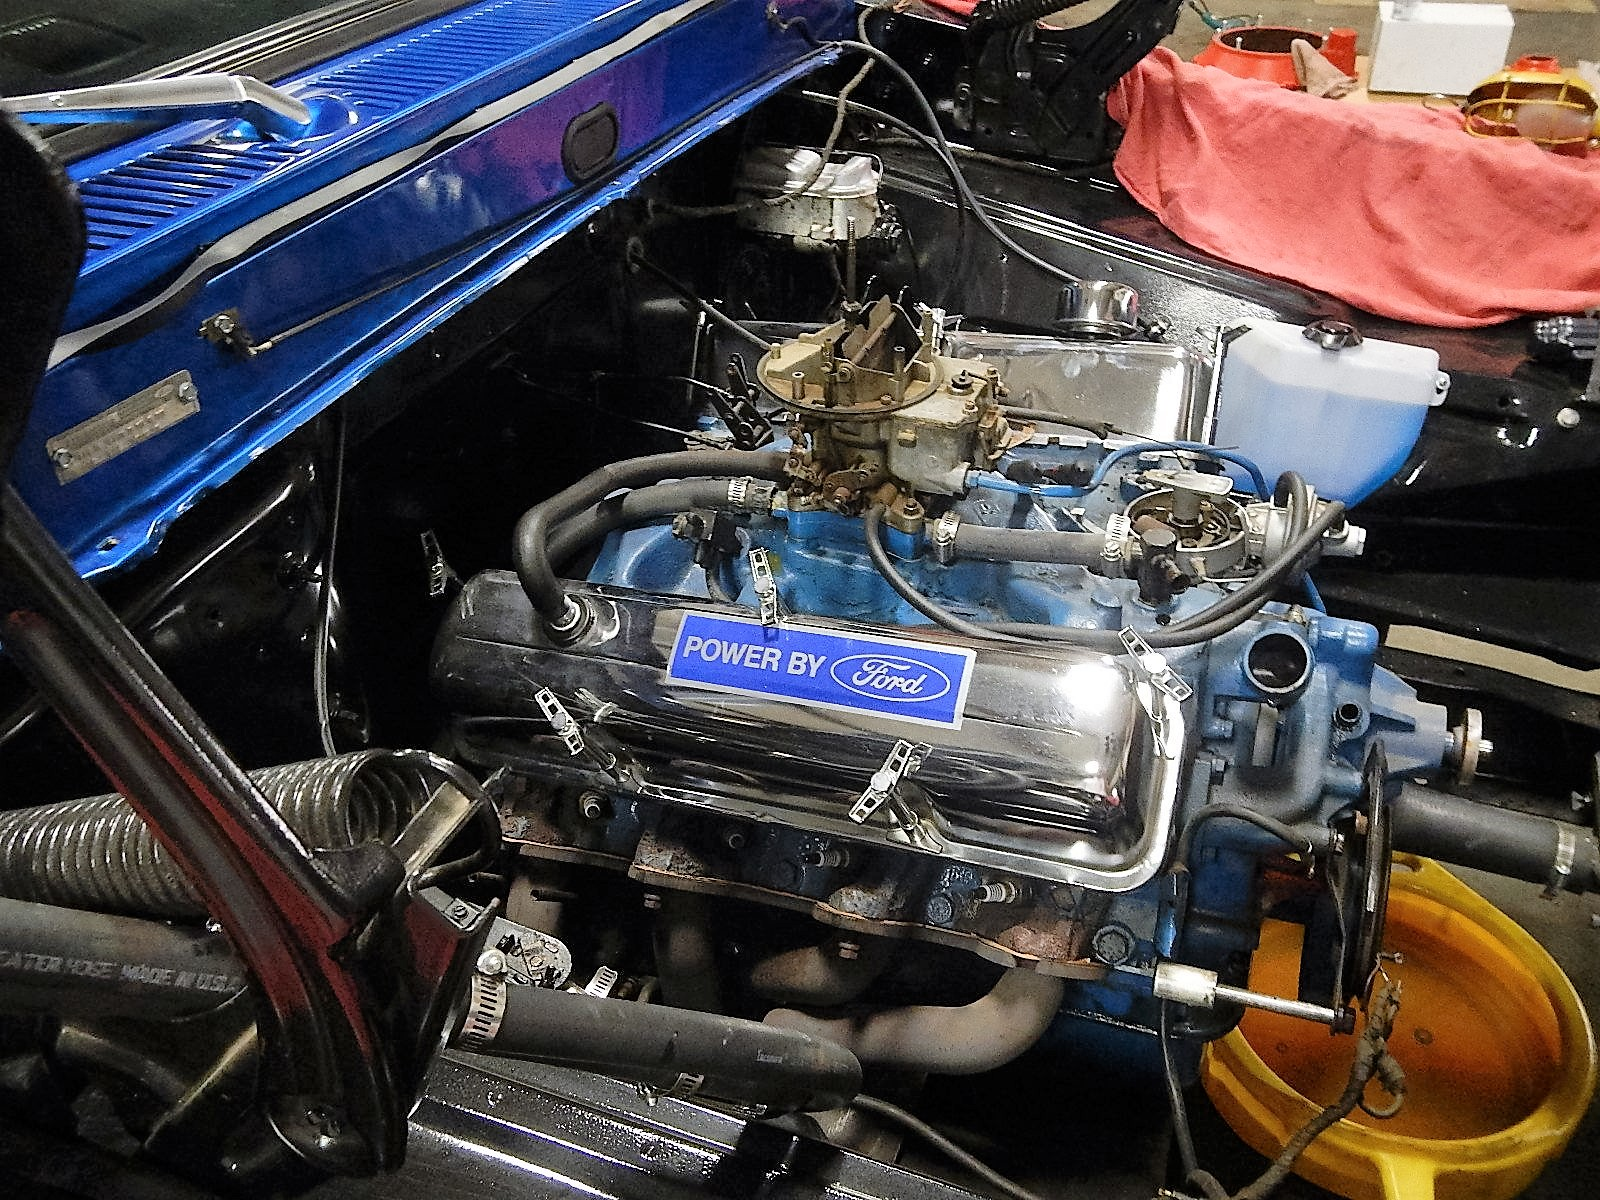 1968 Ford F-100 Front End Swap - Mercury Crown Vic  012.jpg